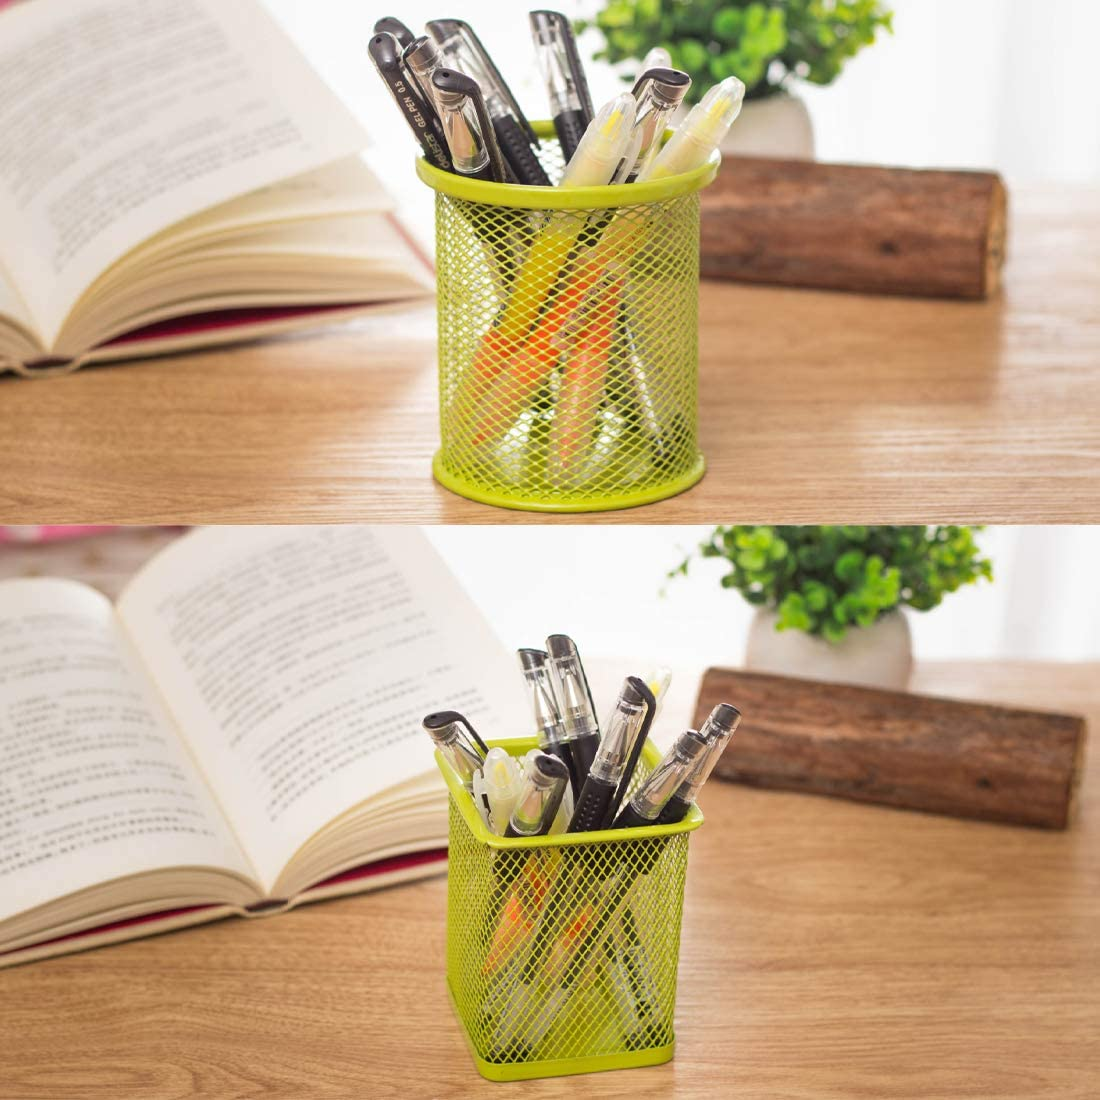 ZaoProteks ZPP1001C Pen and Pencil Metal Cup, Pen and Pencil Metal Holder and Organizer for Desk Office